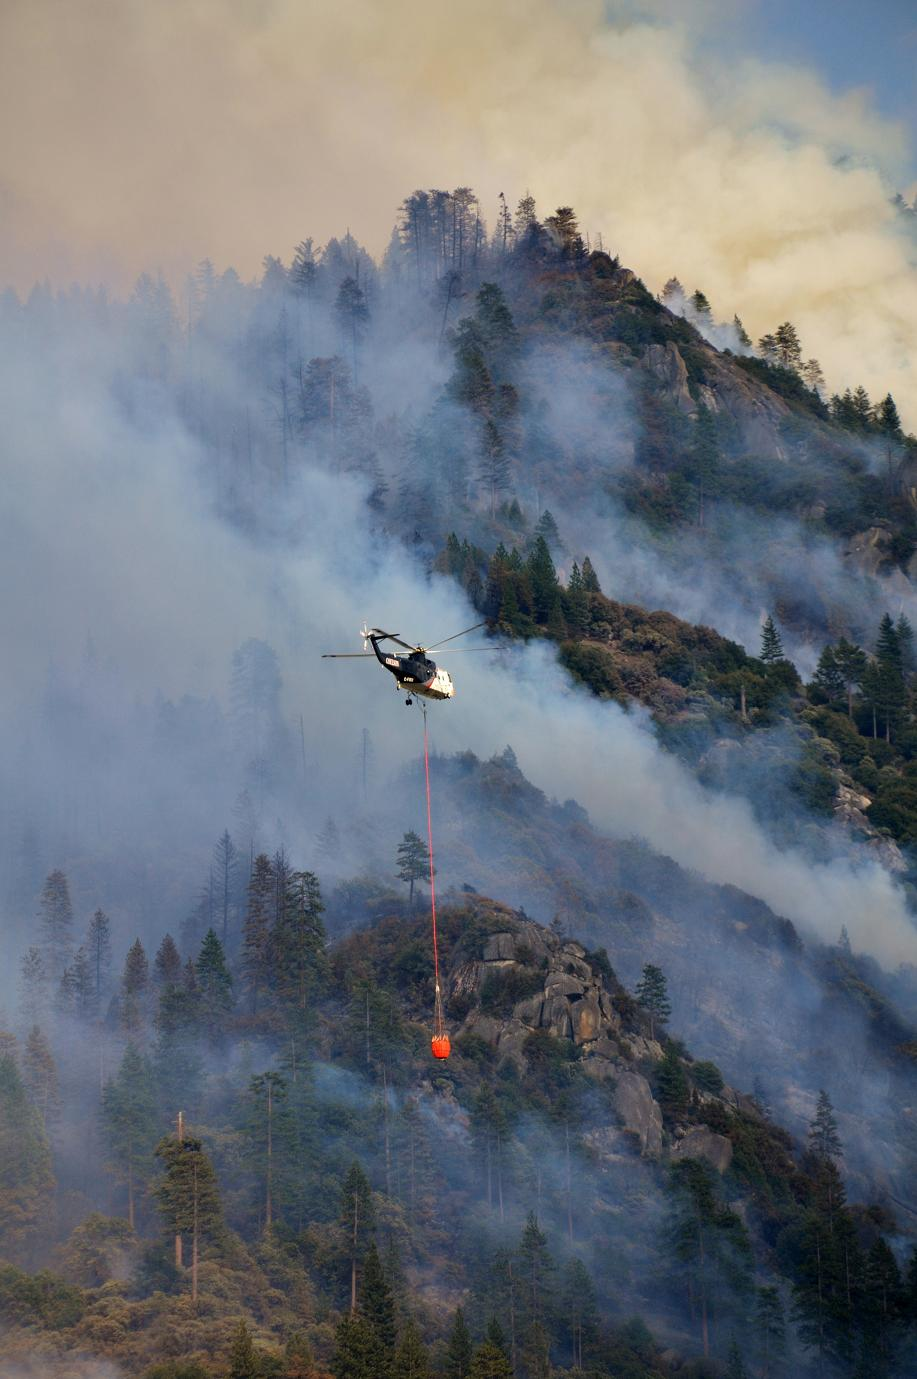 Large helicopter over steep terrain - photo by Gina Clugston